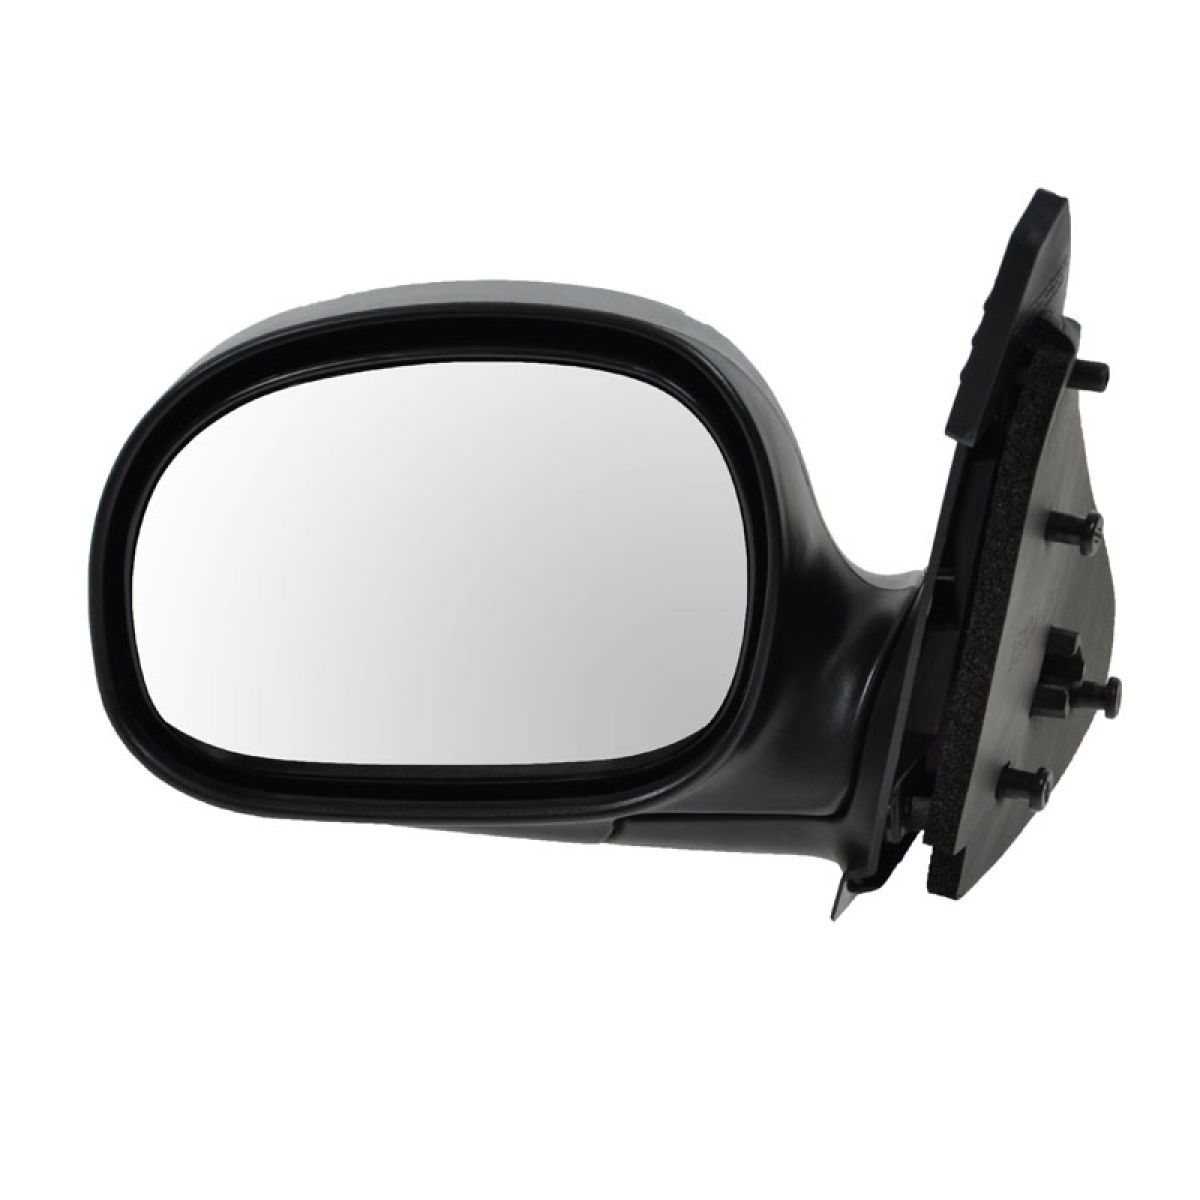 Power Folding Mirrors Option Page 3 Manual Guide